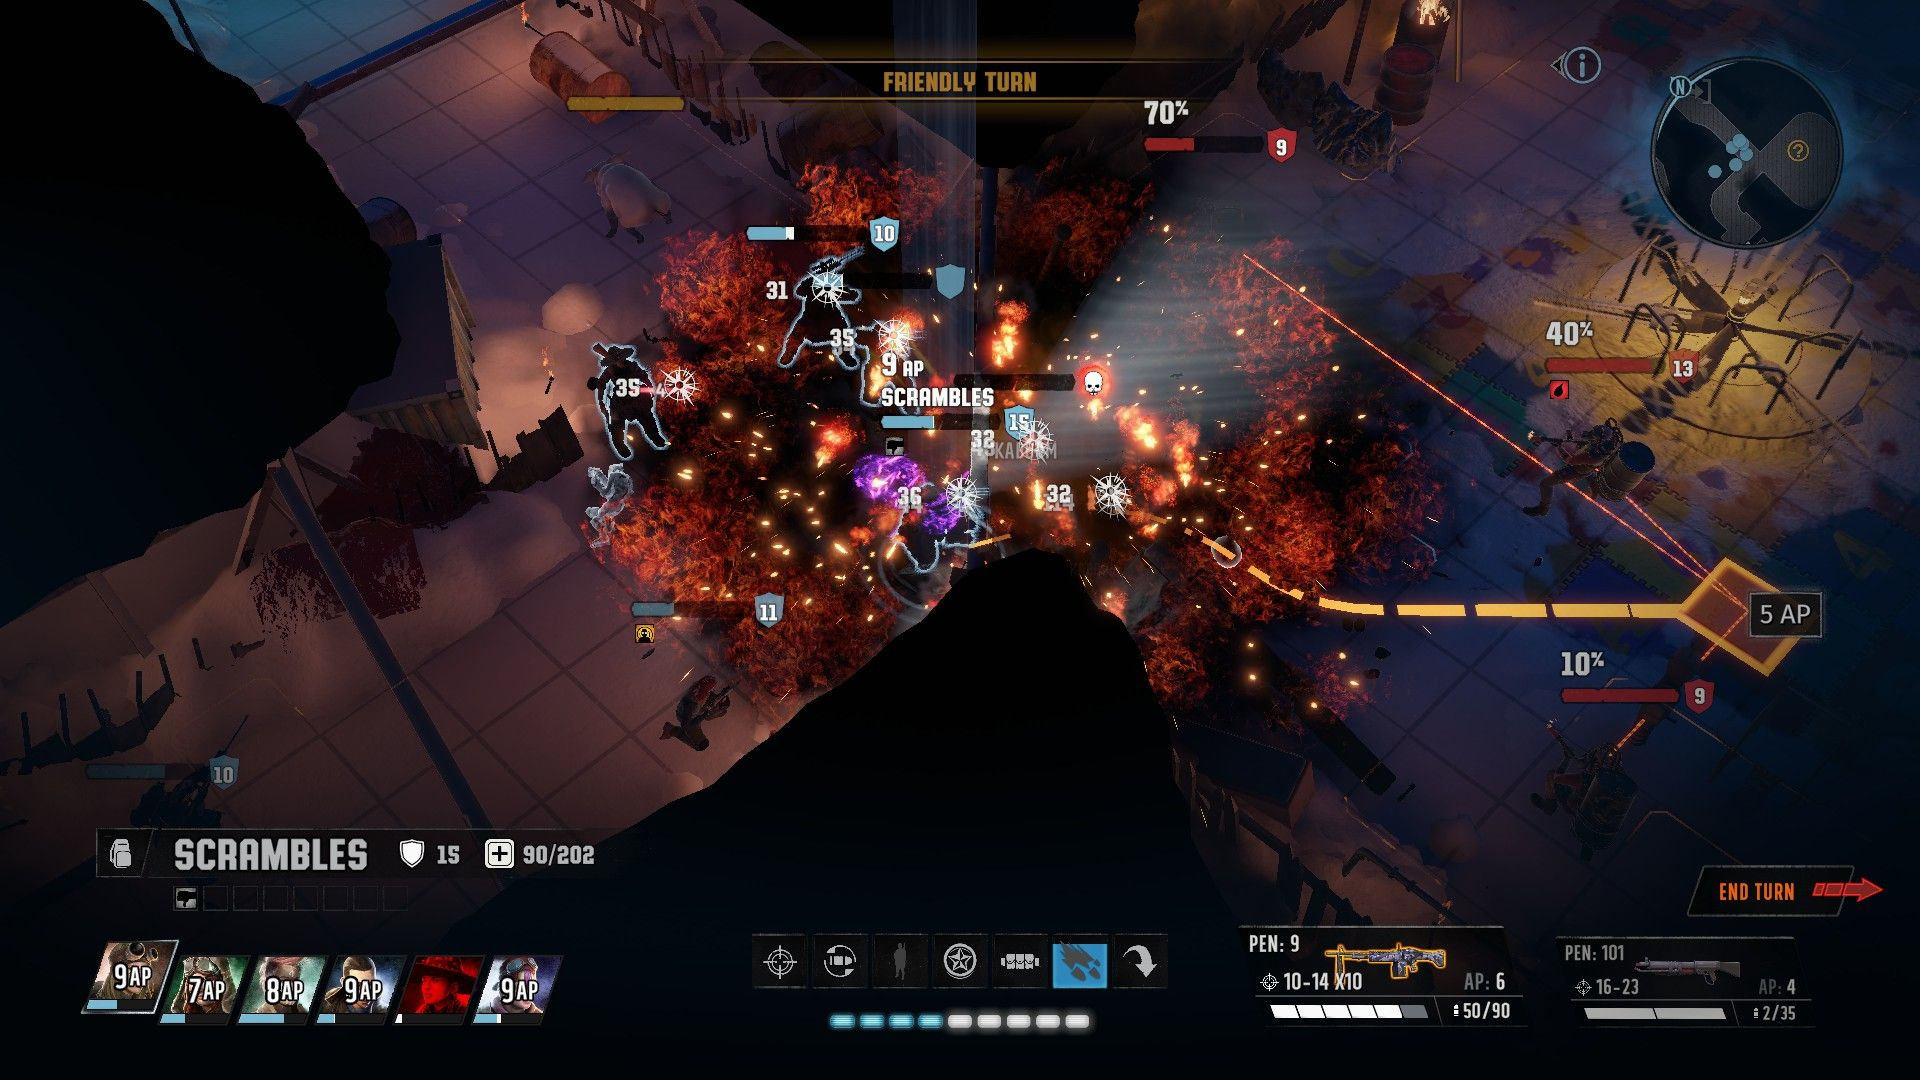 A screenshot of a combat round in Wasteland 3 in a dilapidated building. There is a grid on the floor showing where the currently selected character can move, and red lines from all the enemy NPCs indicating their percentage chance to hit if the selected character moved to a certain position.